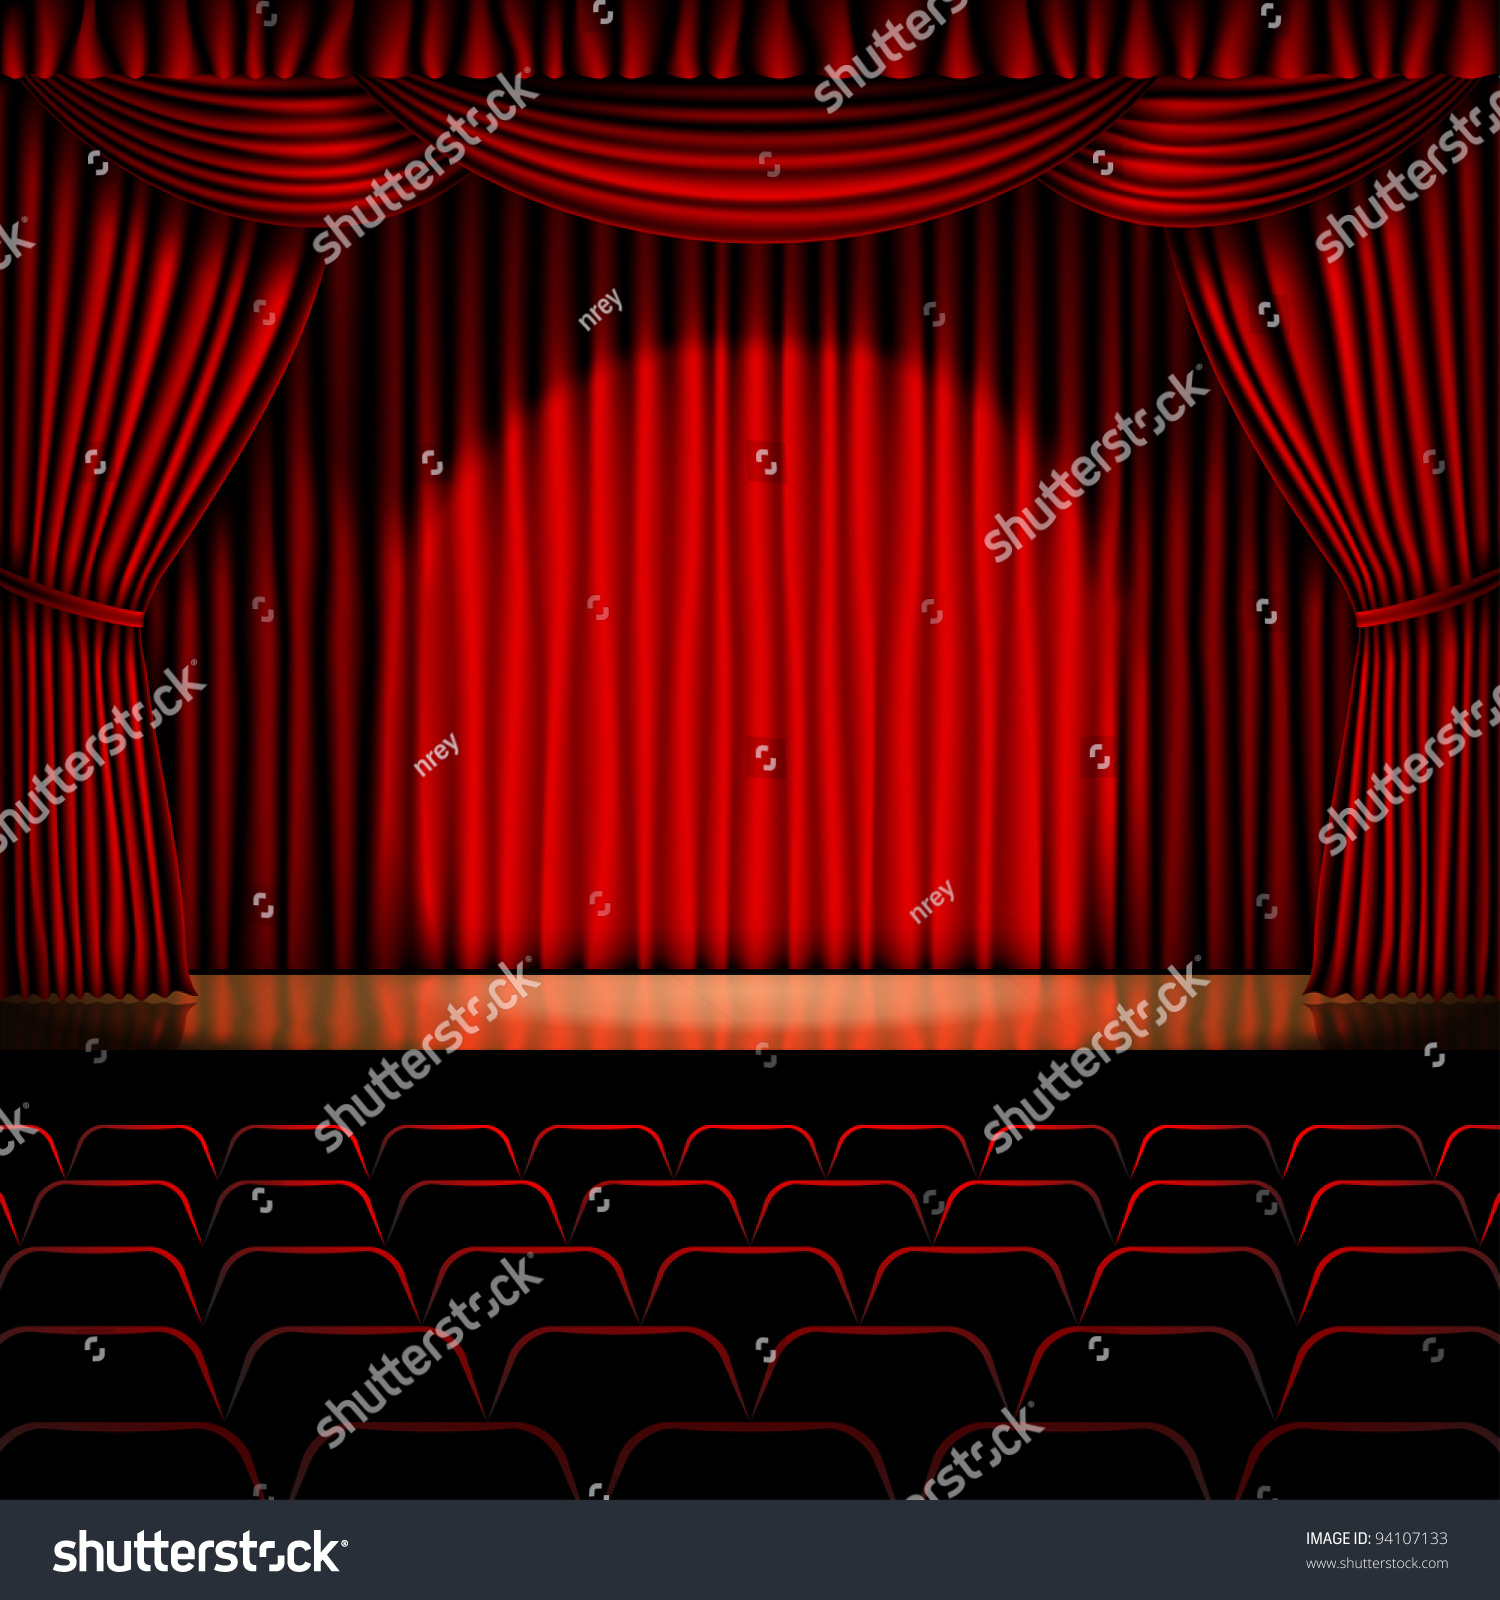 Curtains red theater curtains pink curtain border blue velvet curtains - Theatre Curtains Background